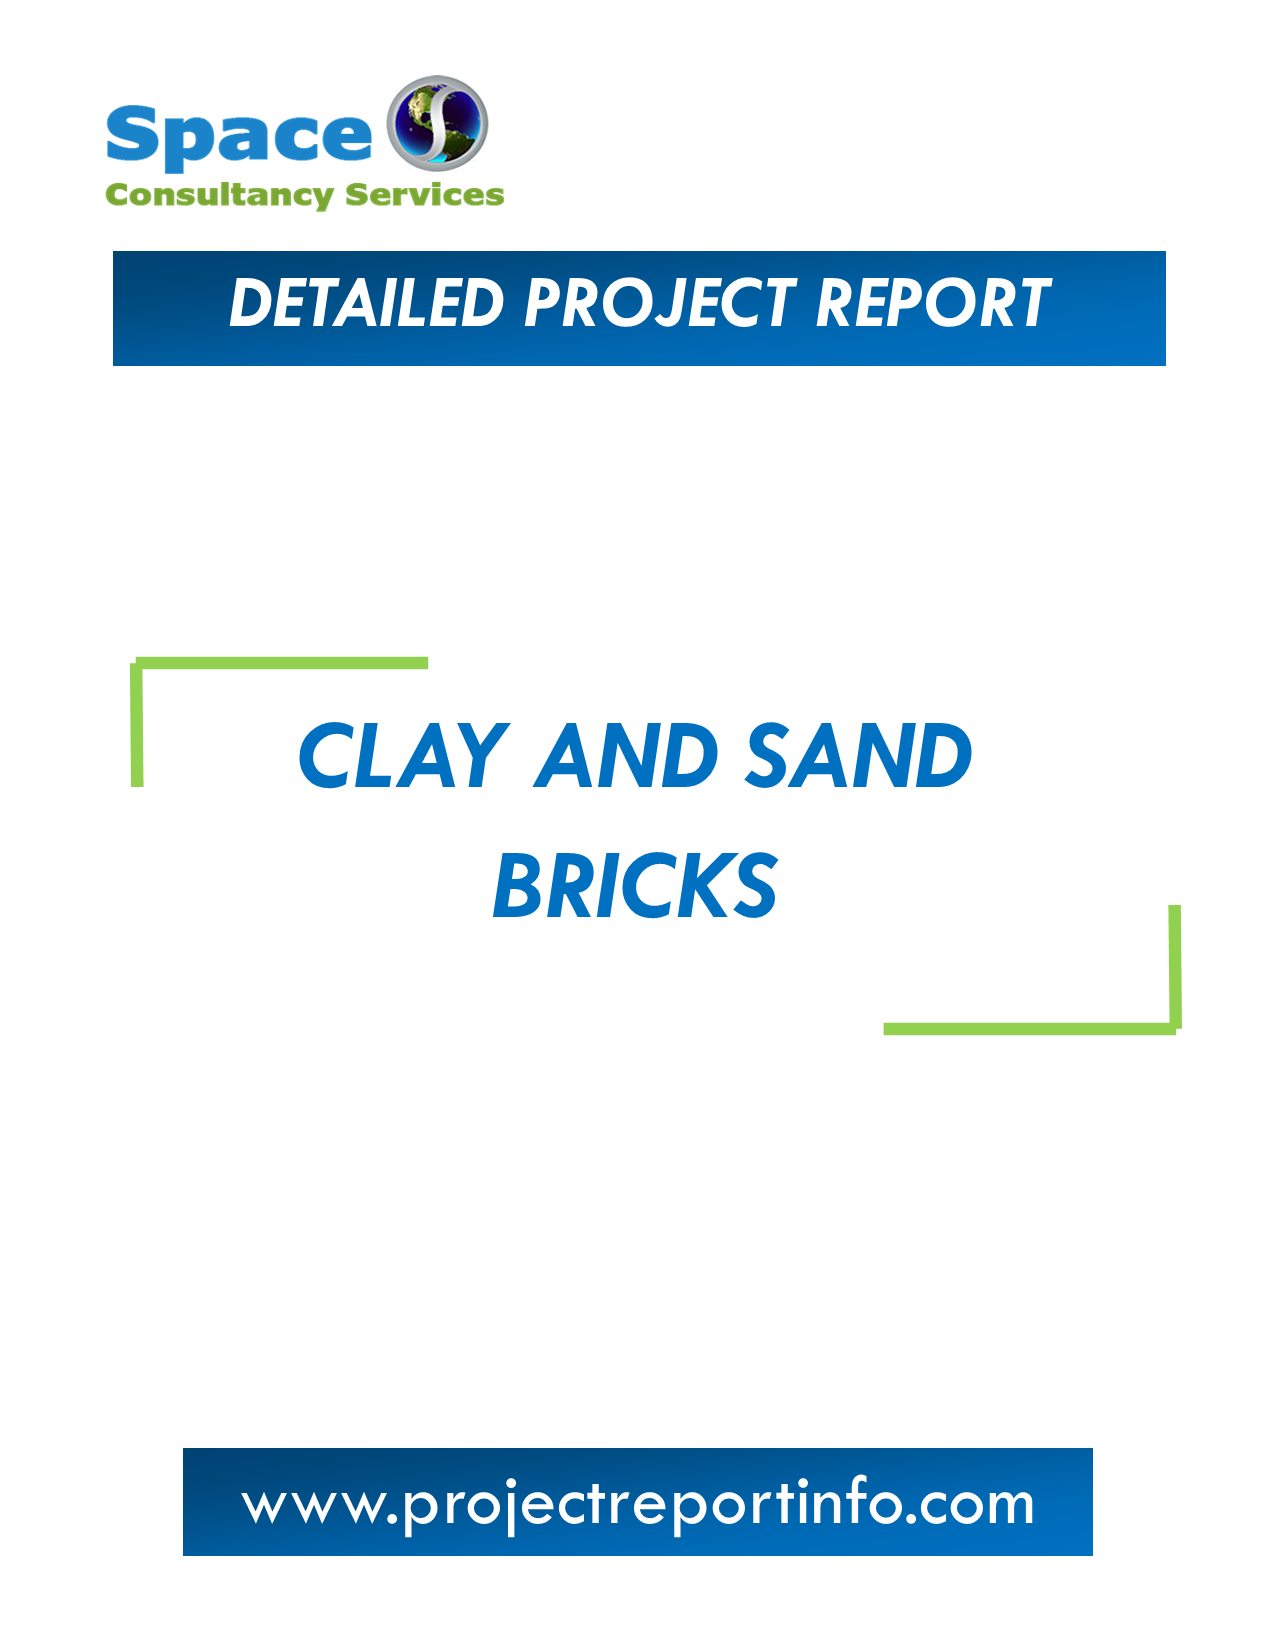 Project Report on Clay and Sand Bricks Plant